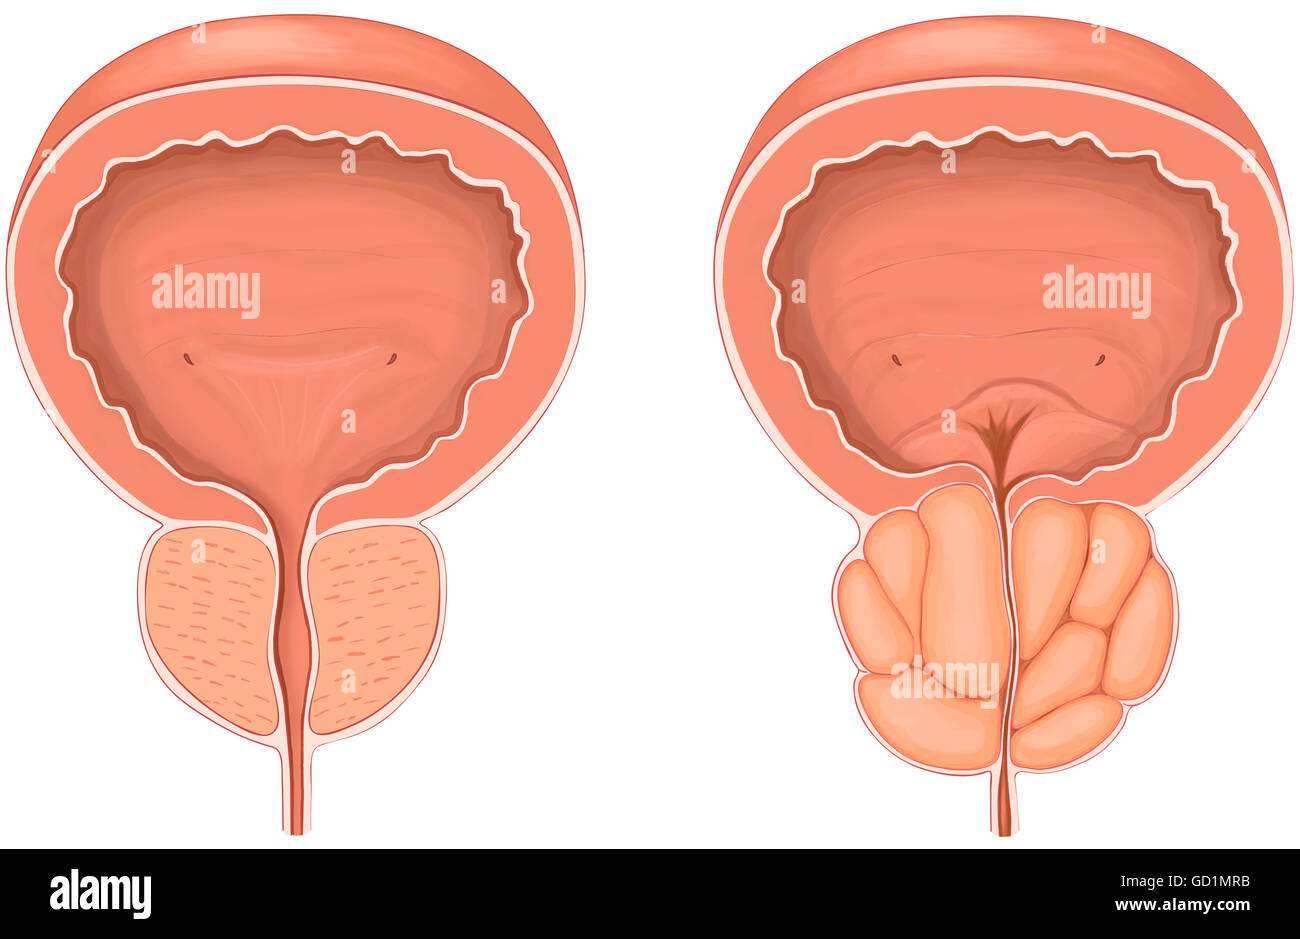 Anterior view showing normal versus enlarged prostate gland - Stock Image